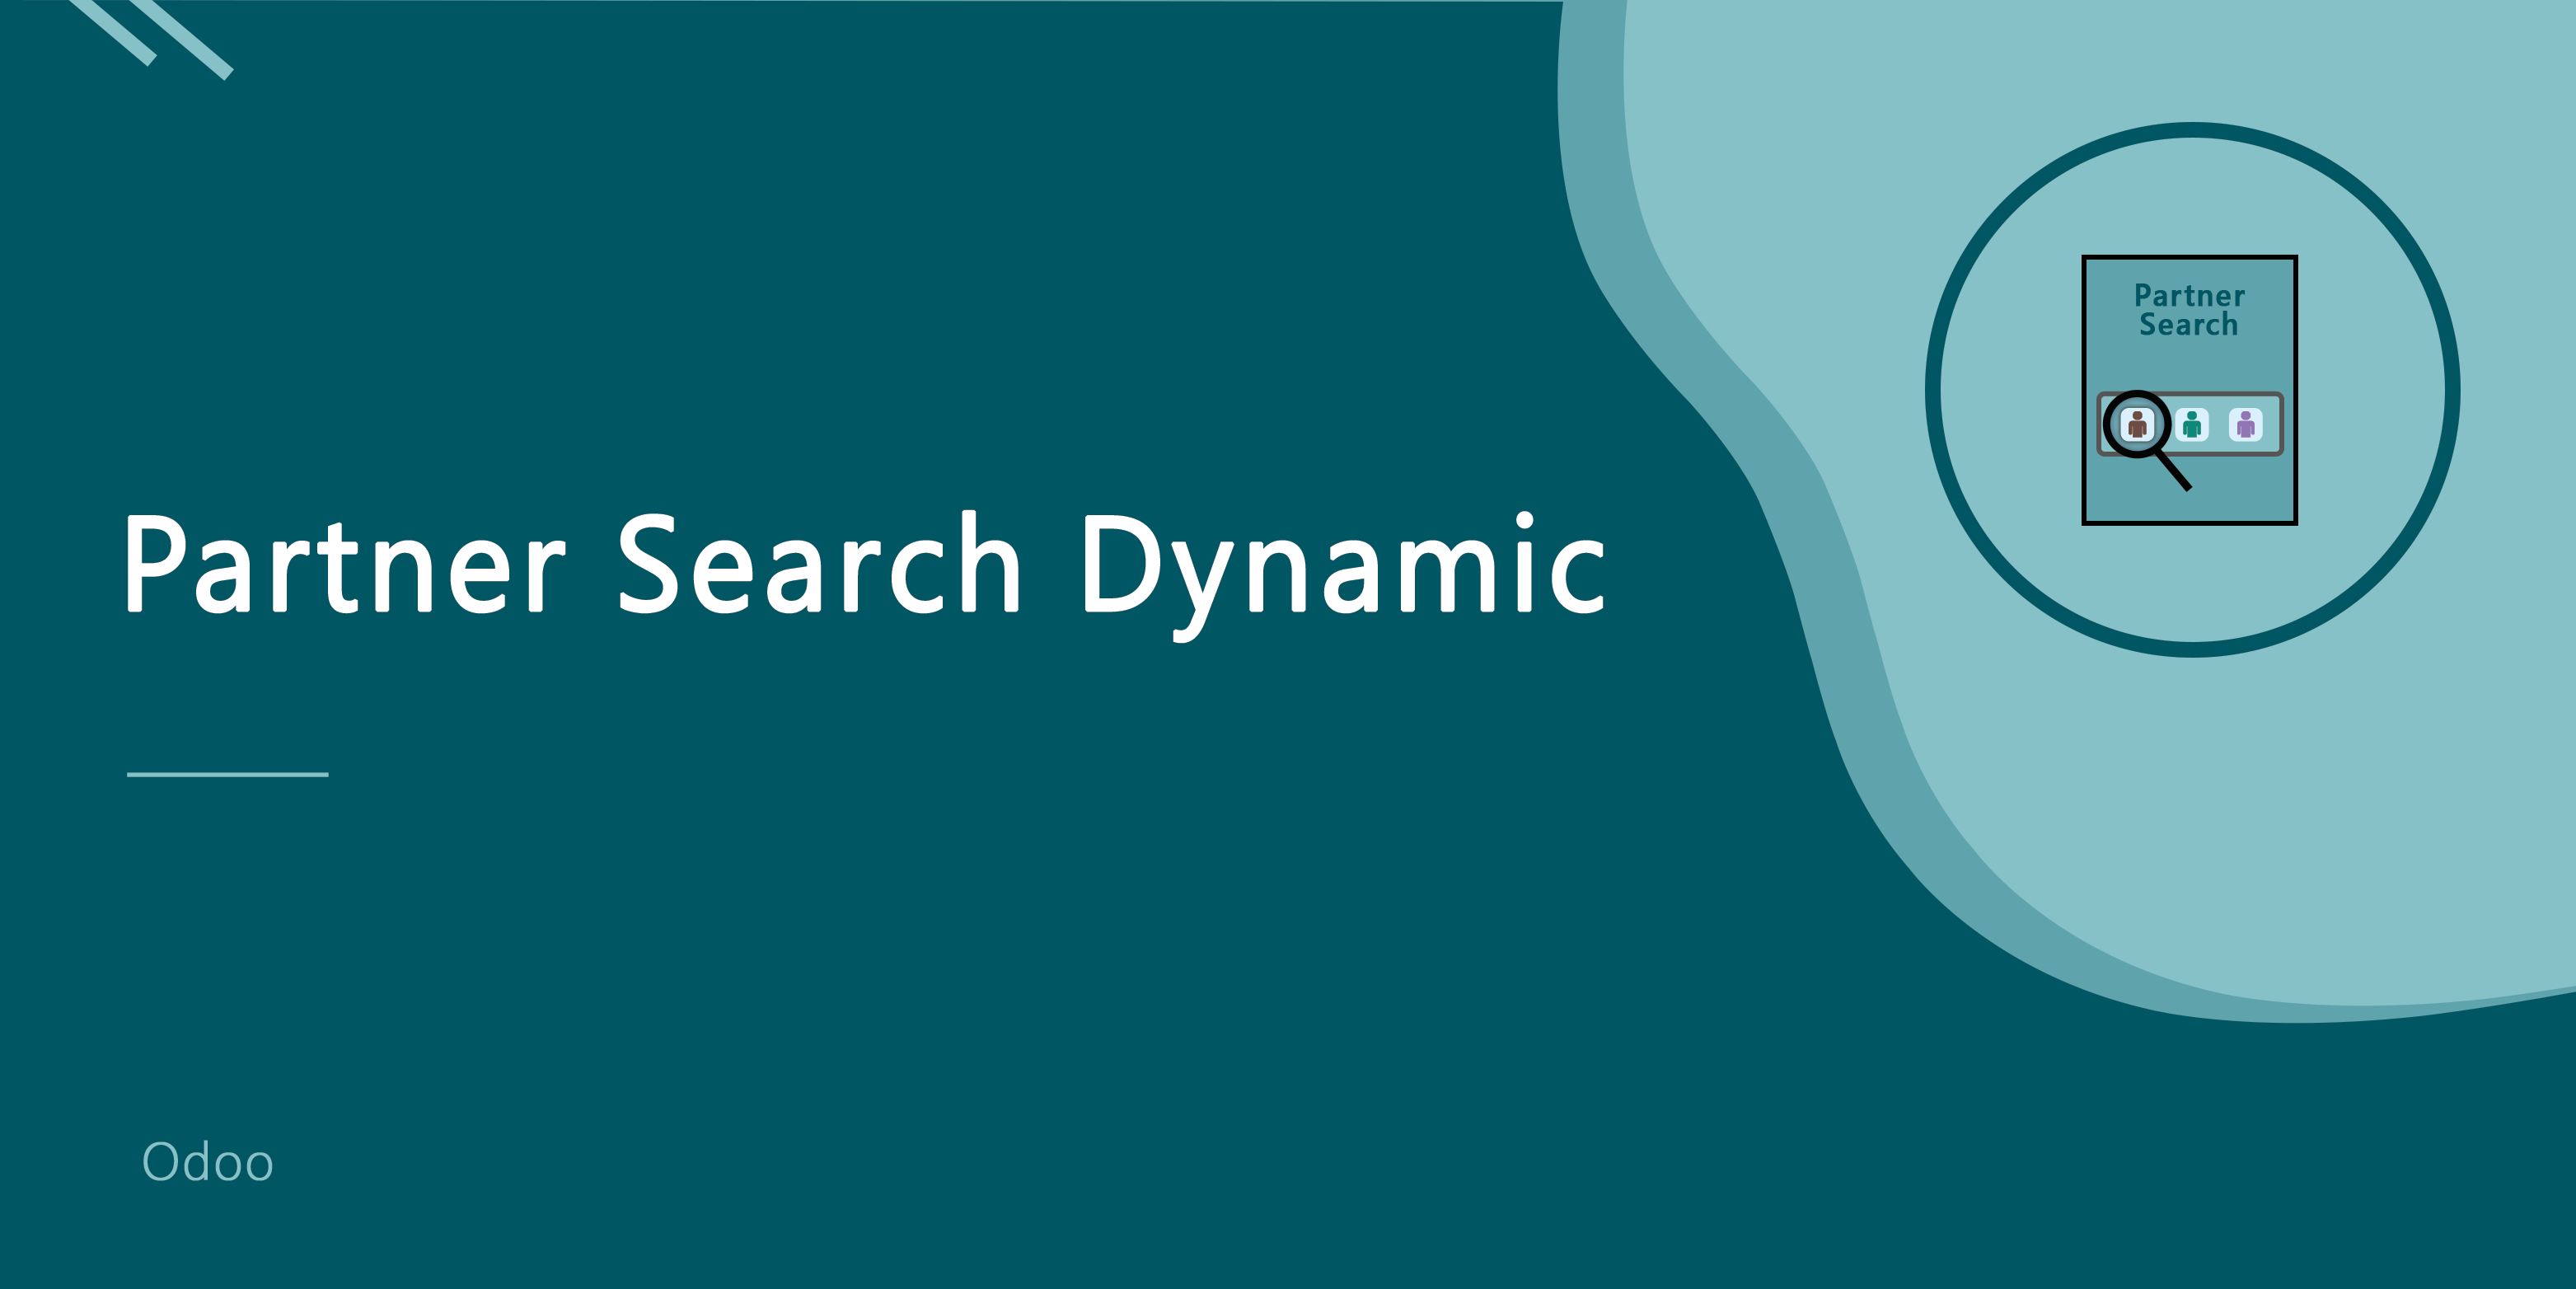 Partner Search Dynamic